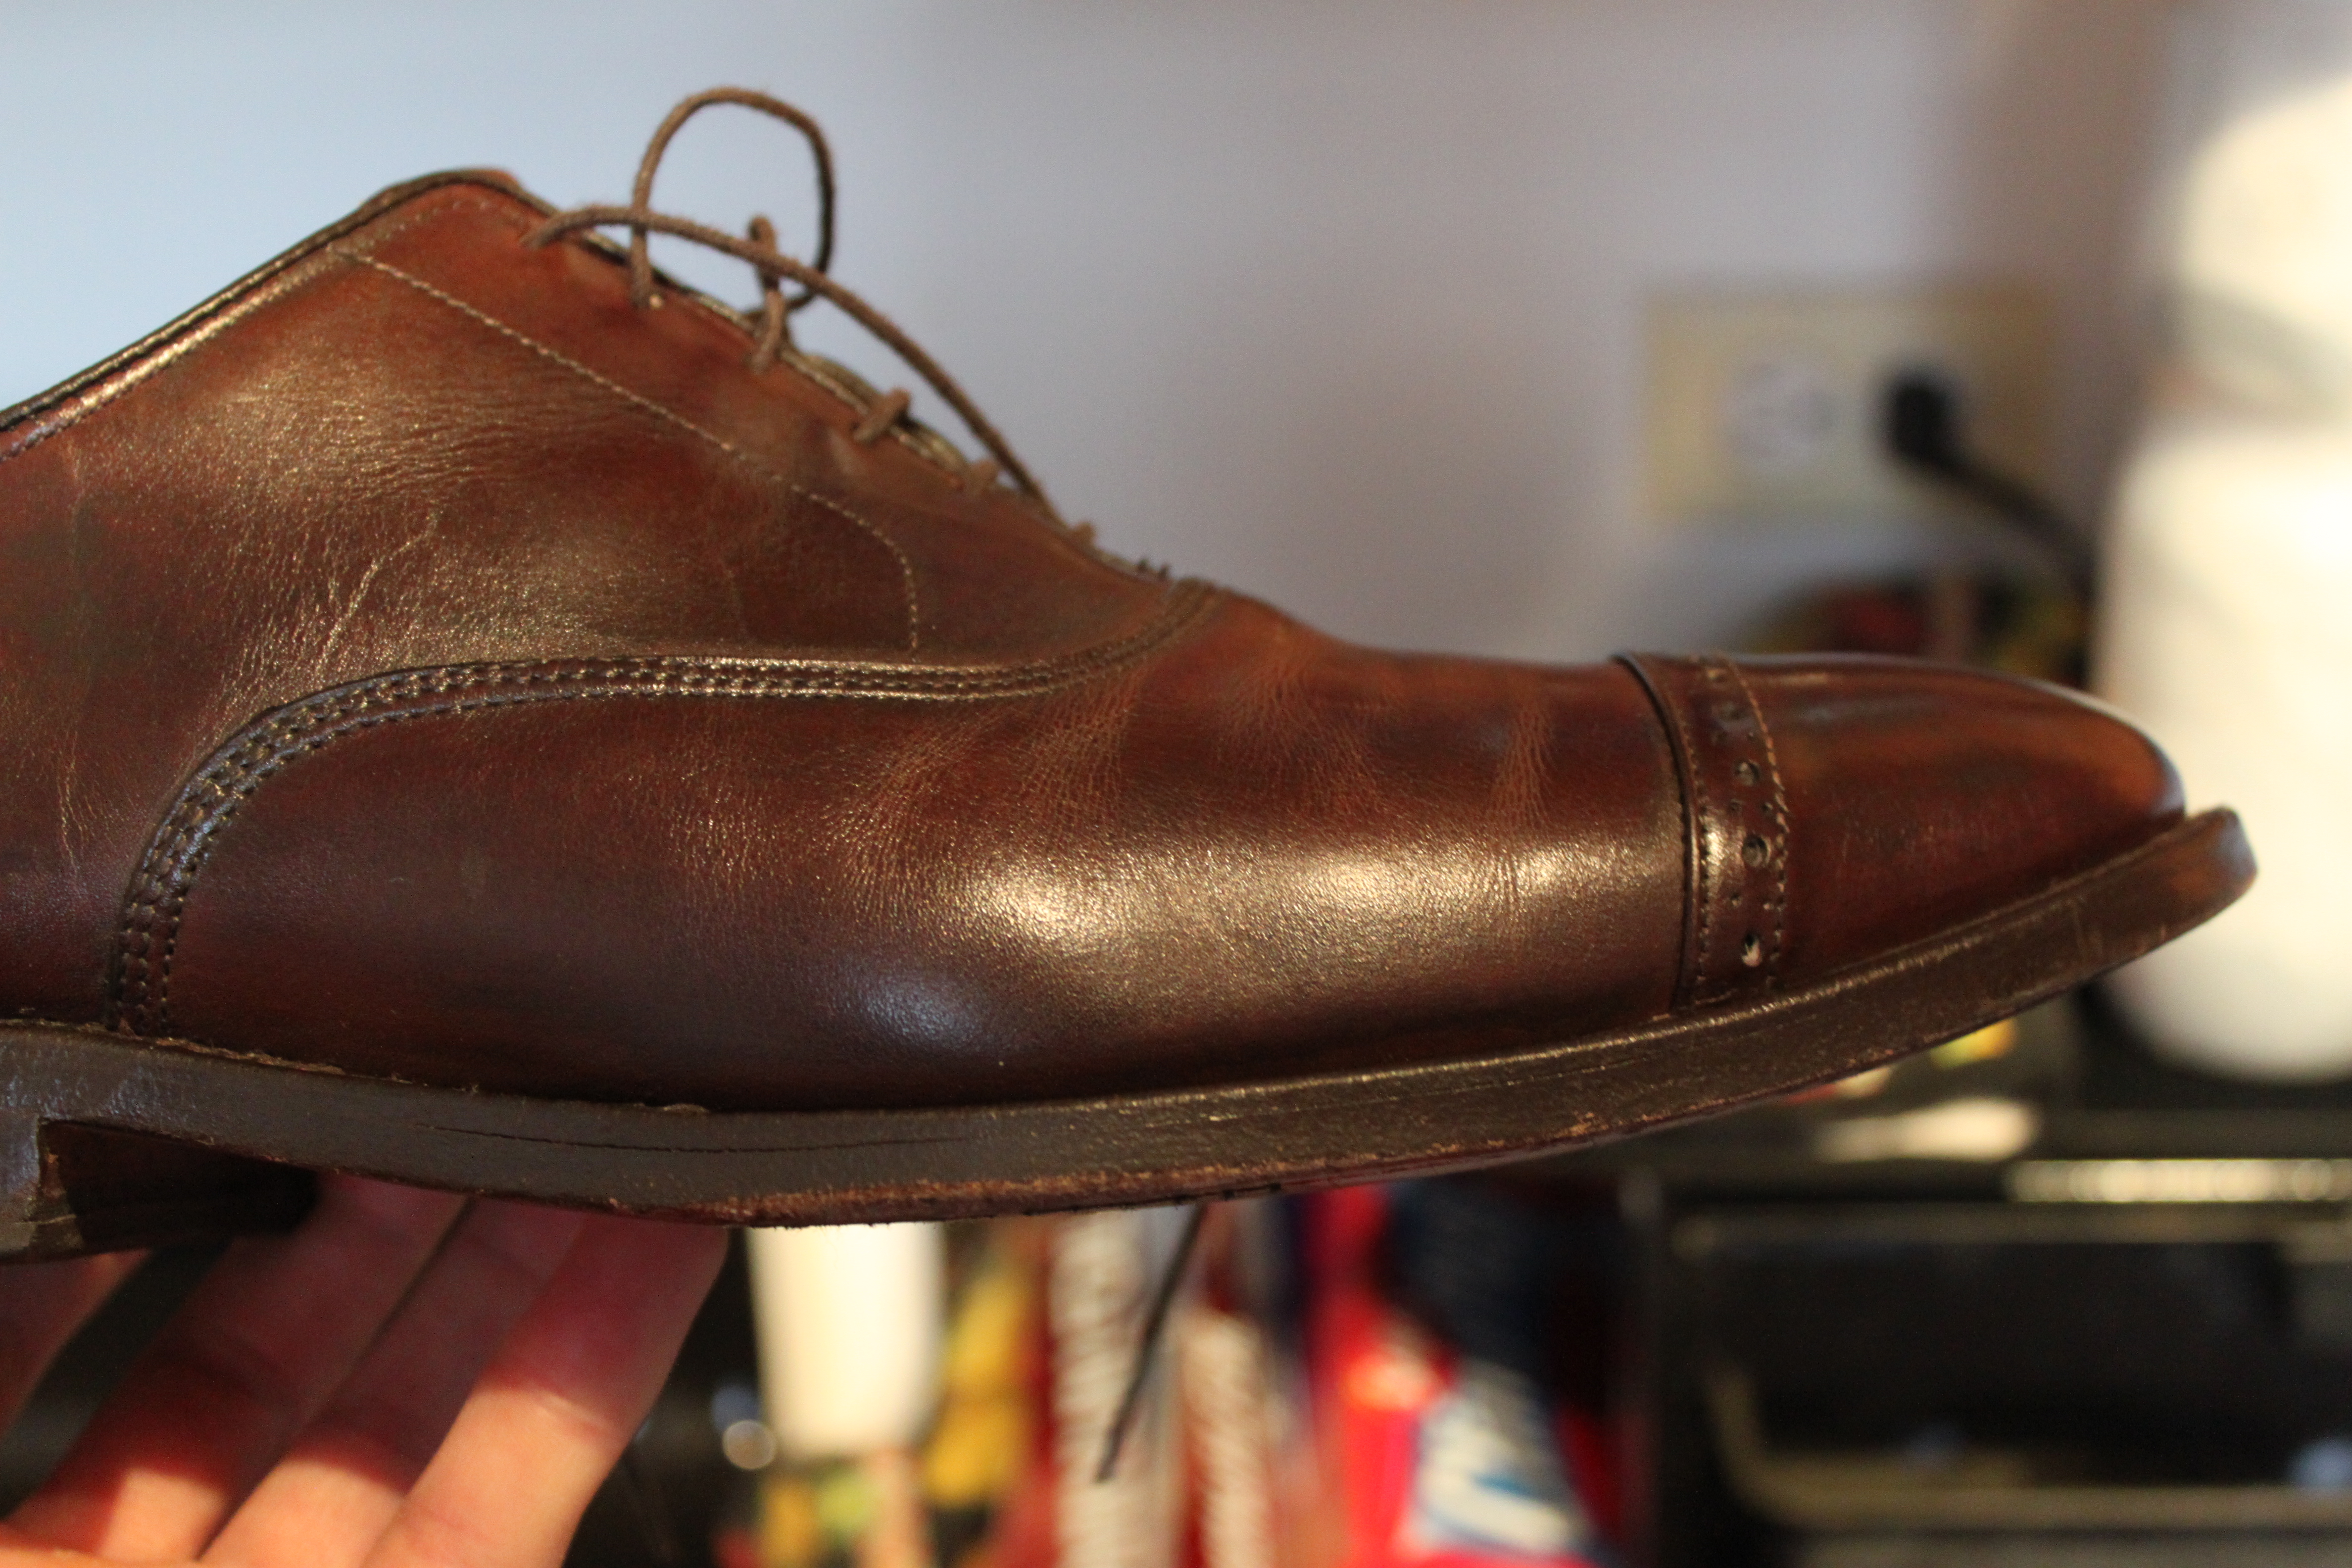 Salt Stains on Leather Shoes and Boots Begin by mixing one cup of cool water and one tablespoon of distilled white vinegar. Soak a cotton ball with the mixture and wipe it over the salt stains.